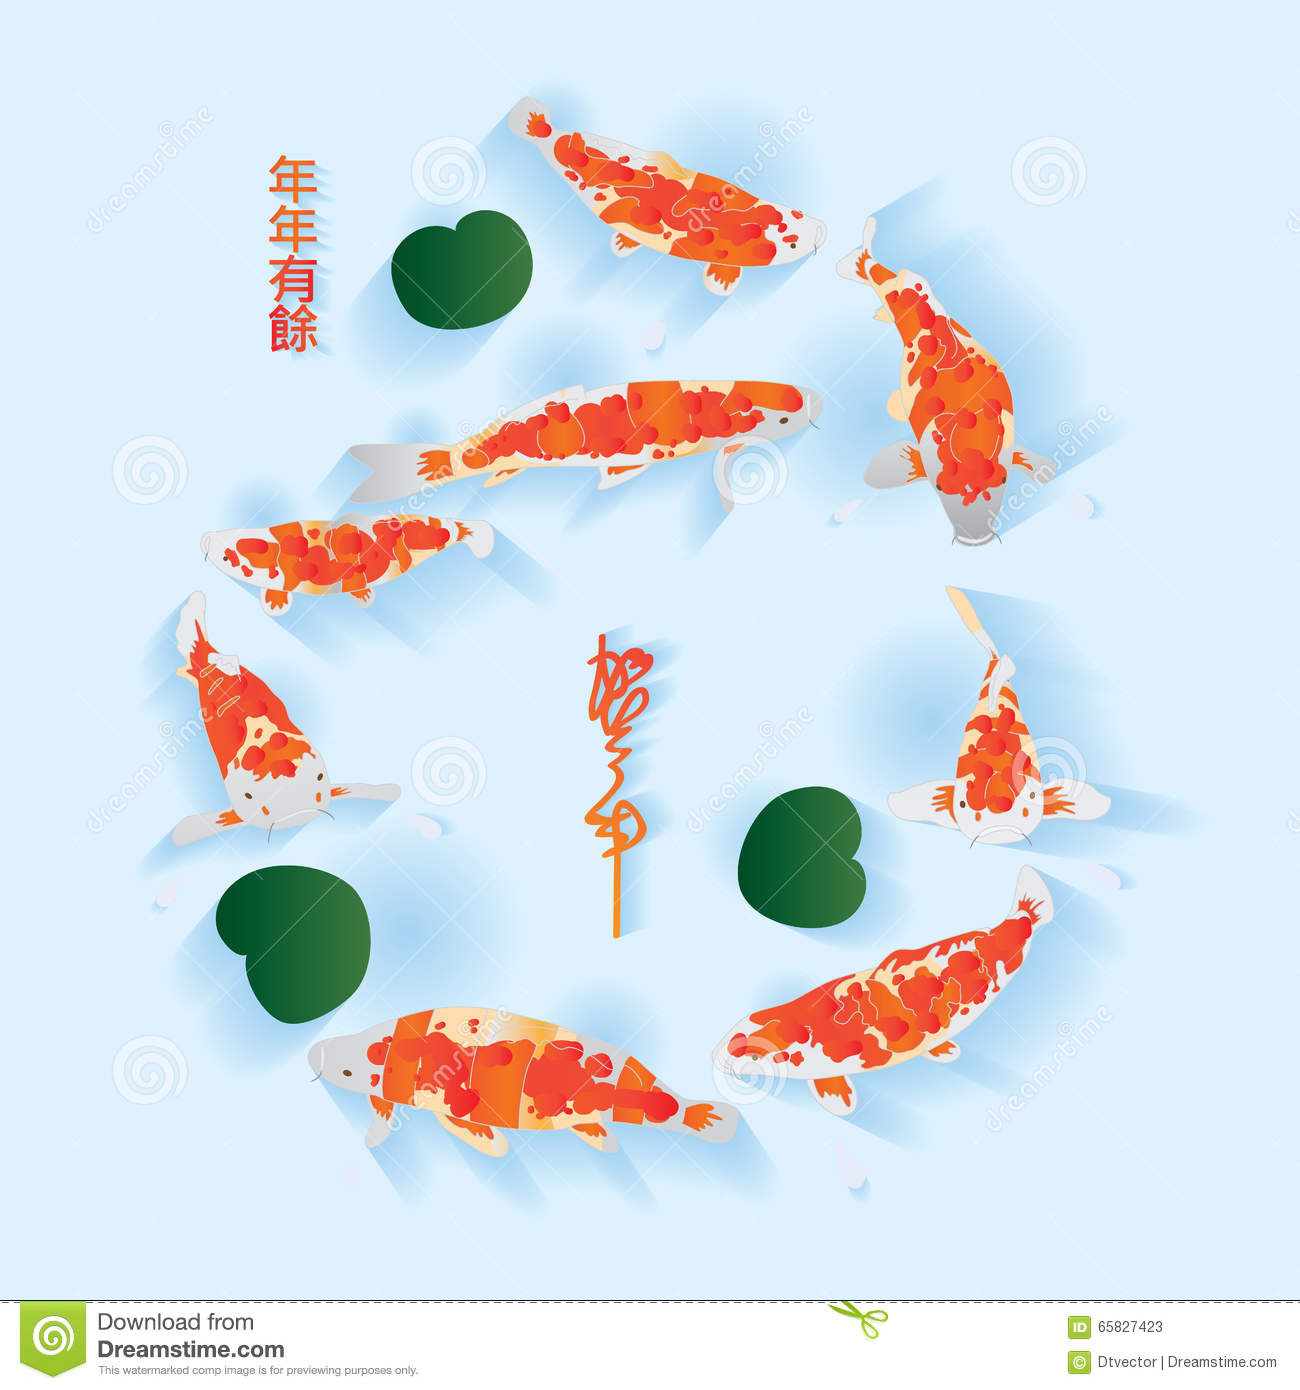 The lake rich with fish royalty free stock photo for Where to buy koi fish near me